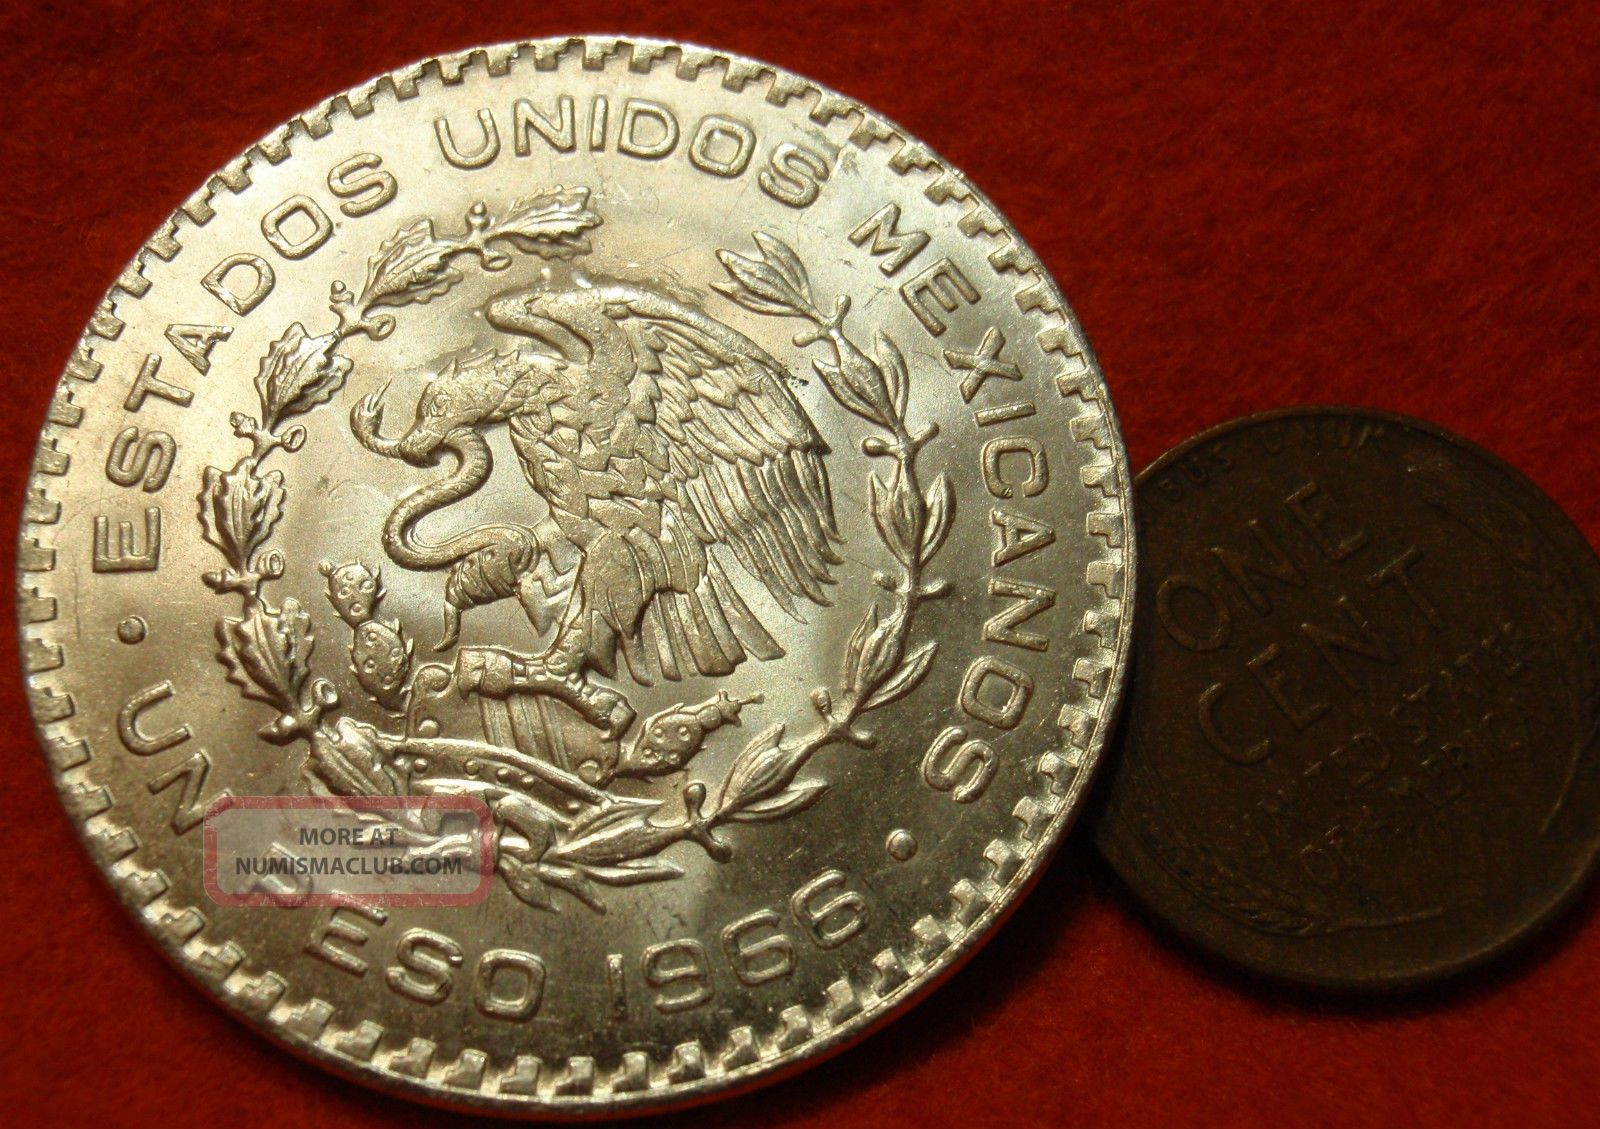 Mexican Silver Dollar Coin One Peso Big Grande 1966 Un